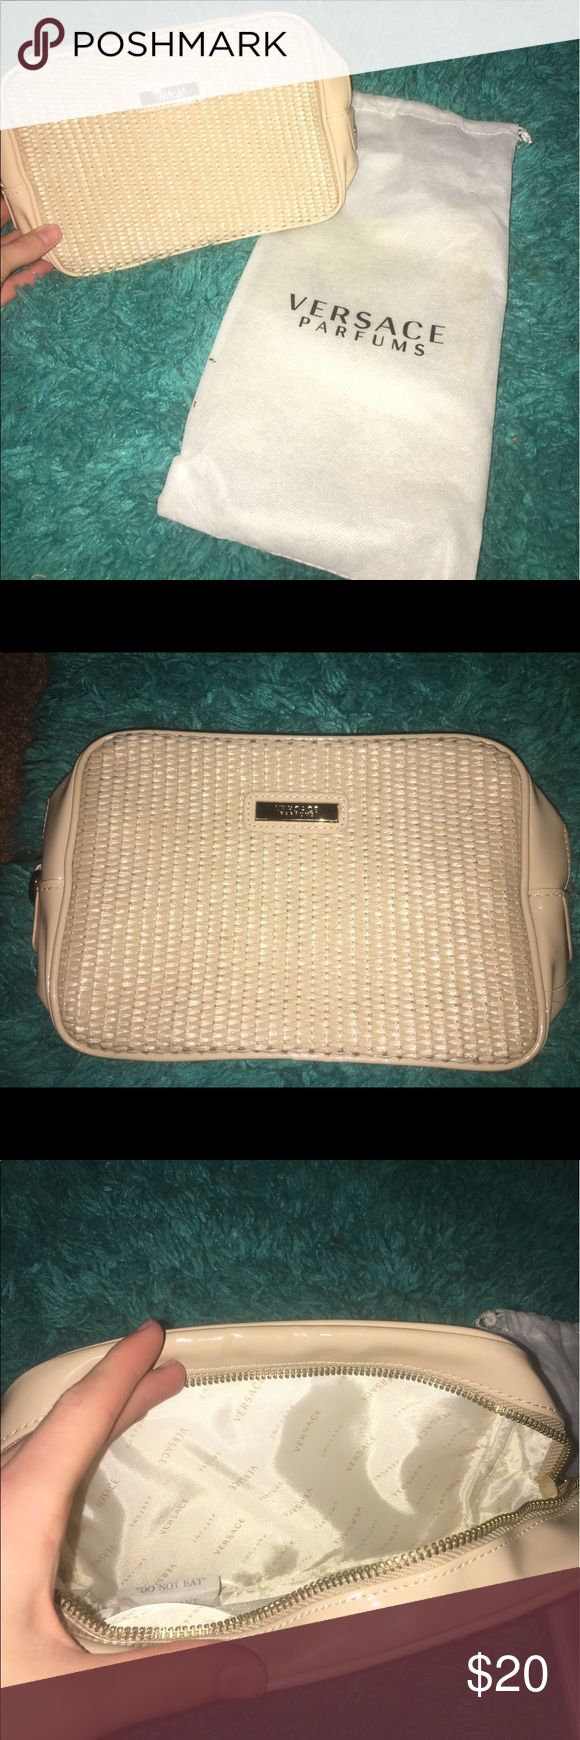 Gold Versace parfums bag This small makeup/cosmetic carrying case has never been used, brand new and comes with the dust bag. Versace Collection Bags Cosmetic Bags & Cases